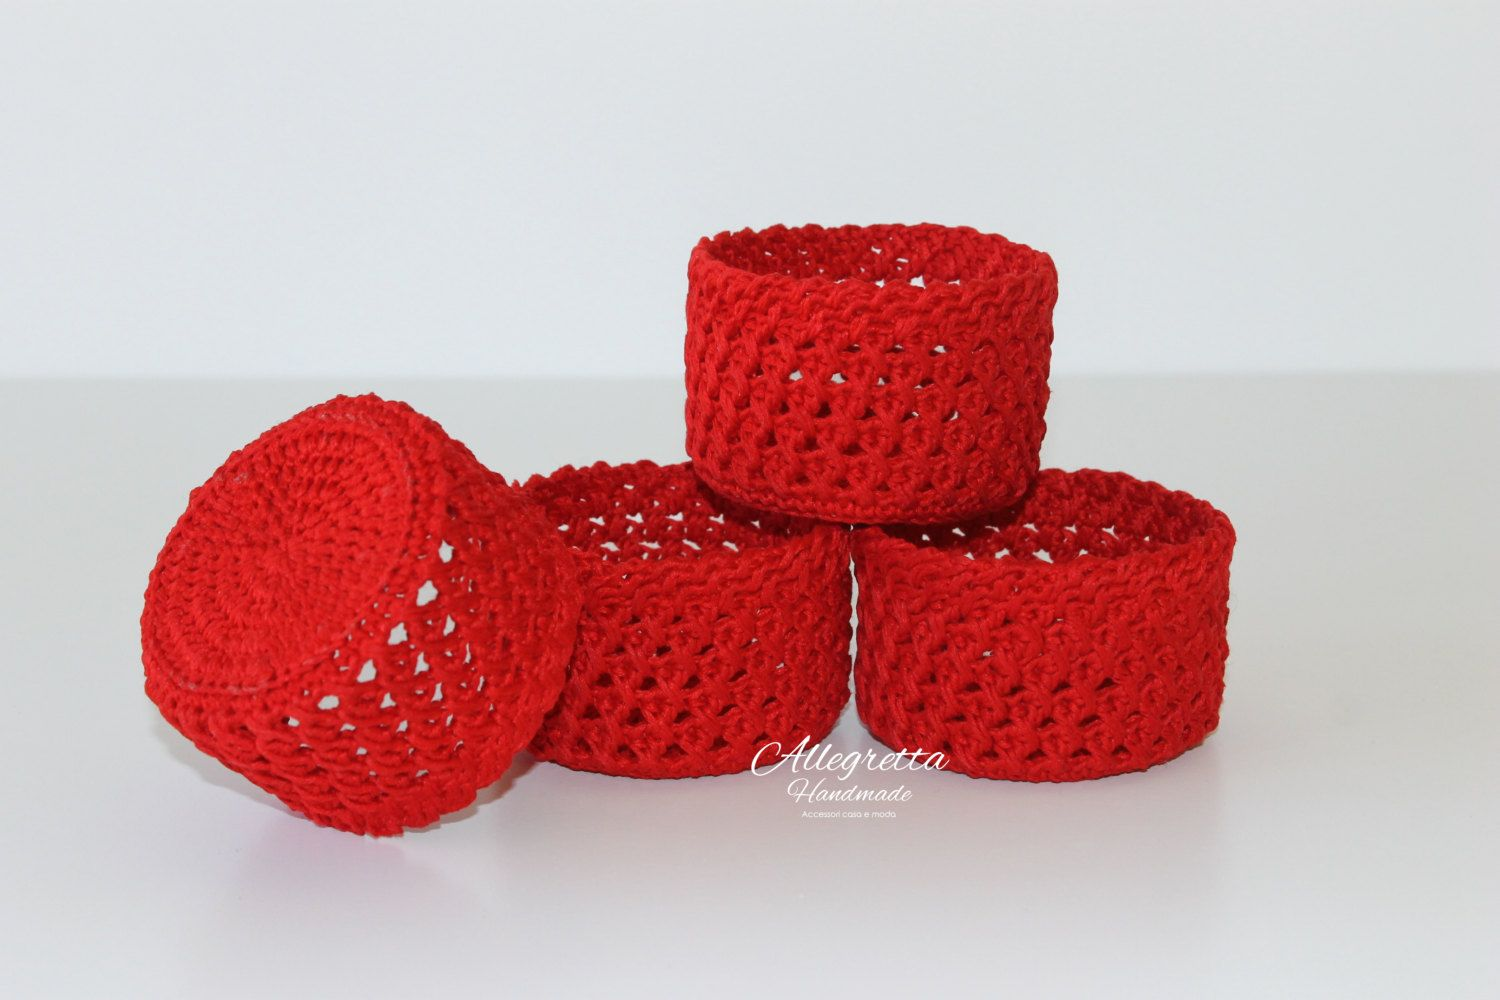 Four red crochet baskets home decor boho chic country chic gift